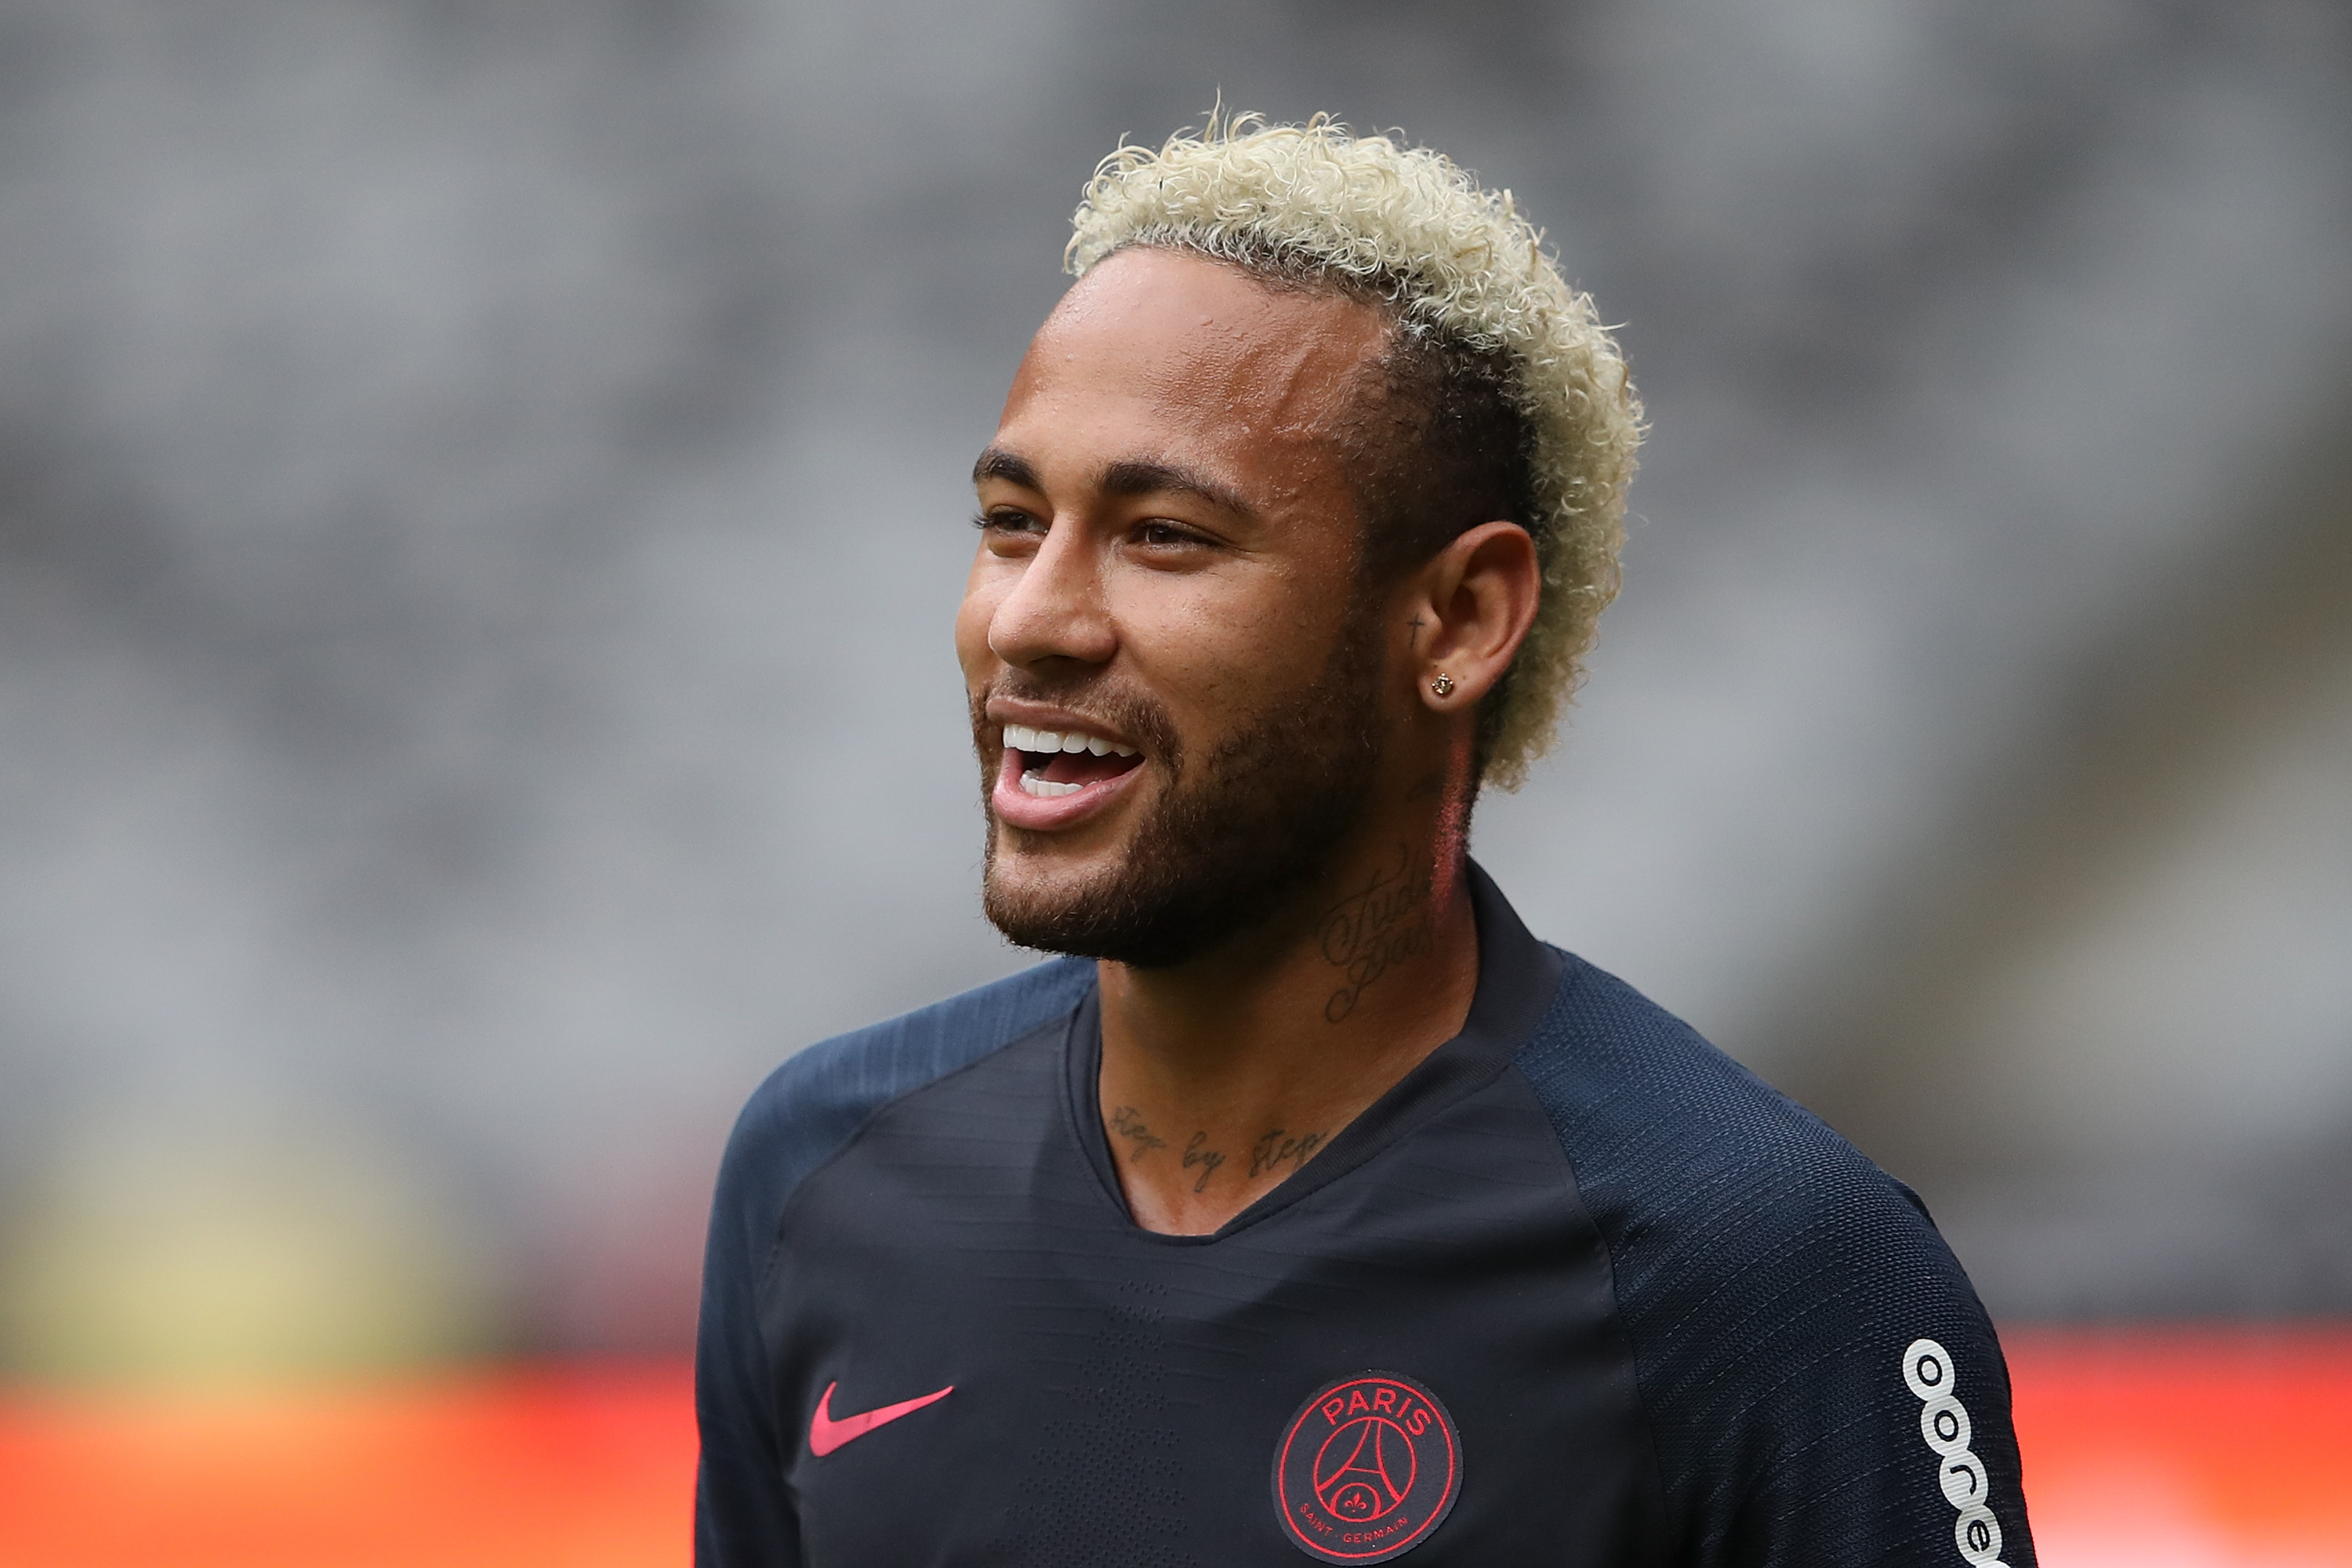 There are not many better than Neymar. (Photo by Lintao Zhang/Getty Images)